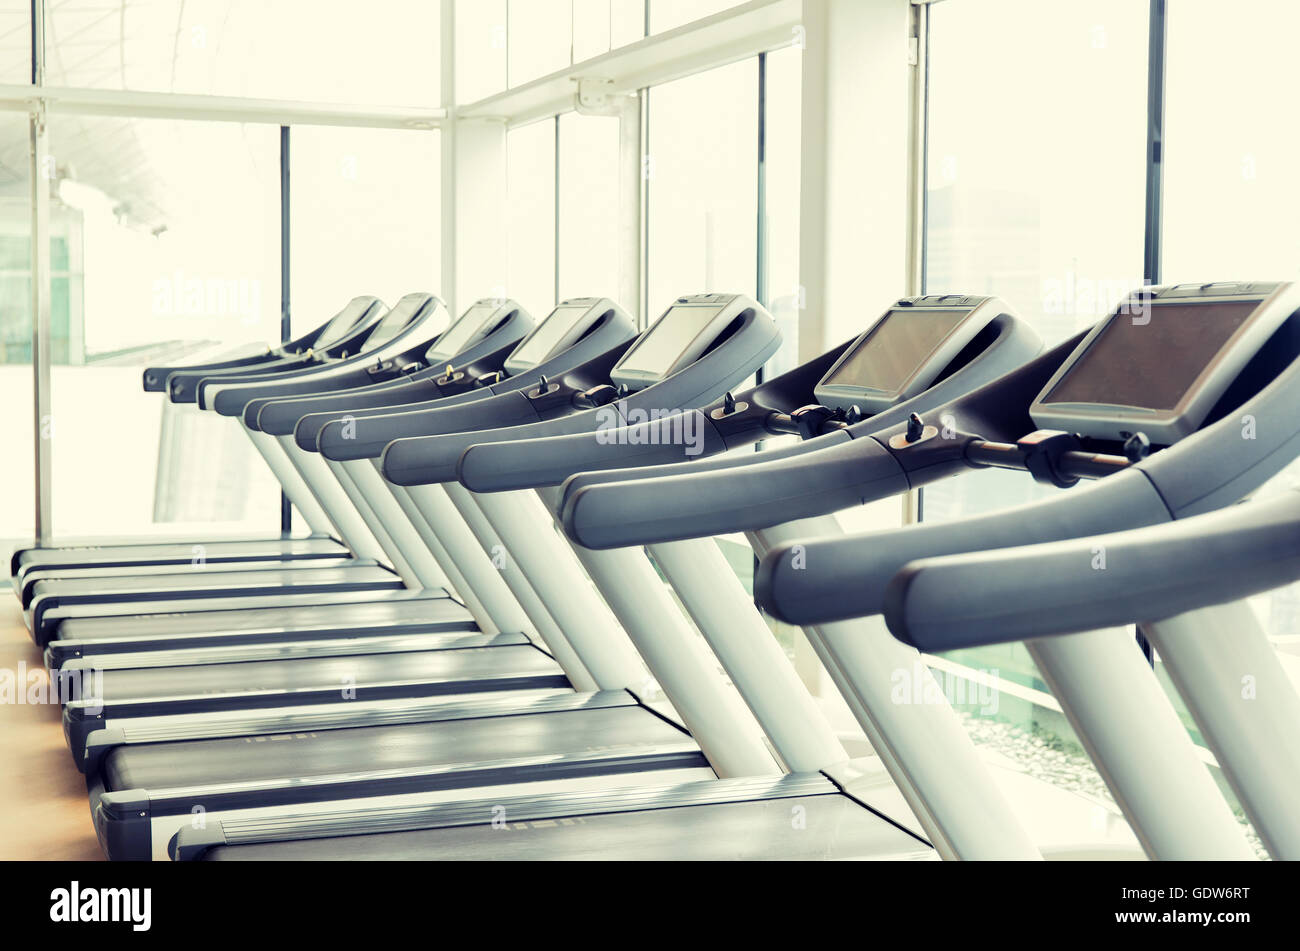 treadmills in gym - Stock Image